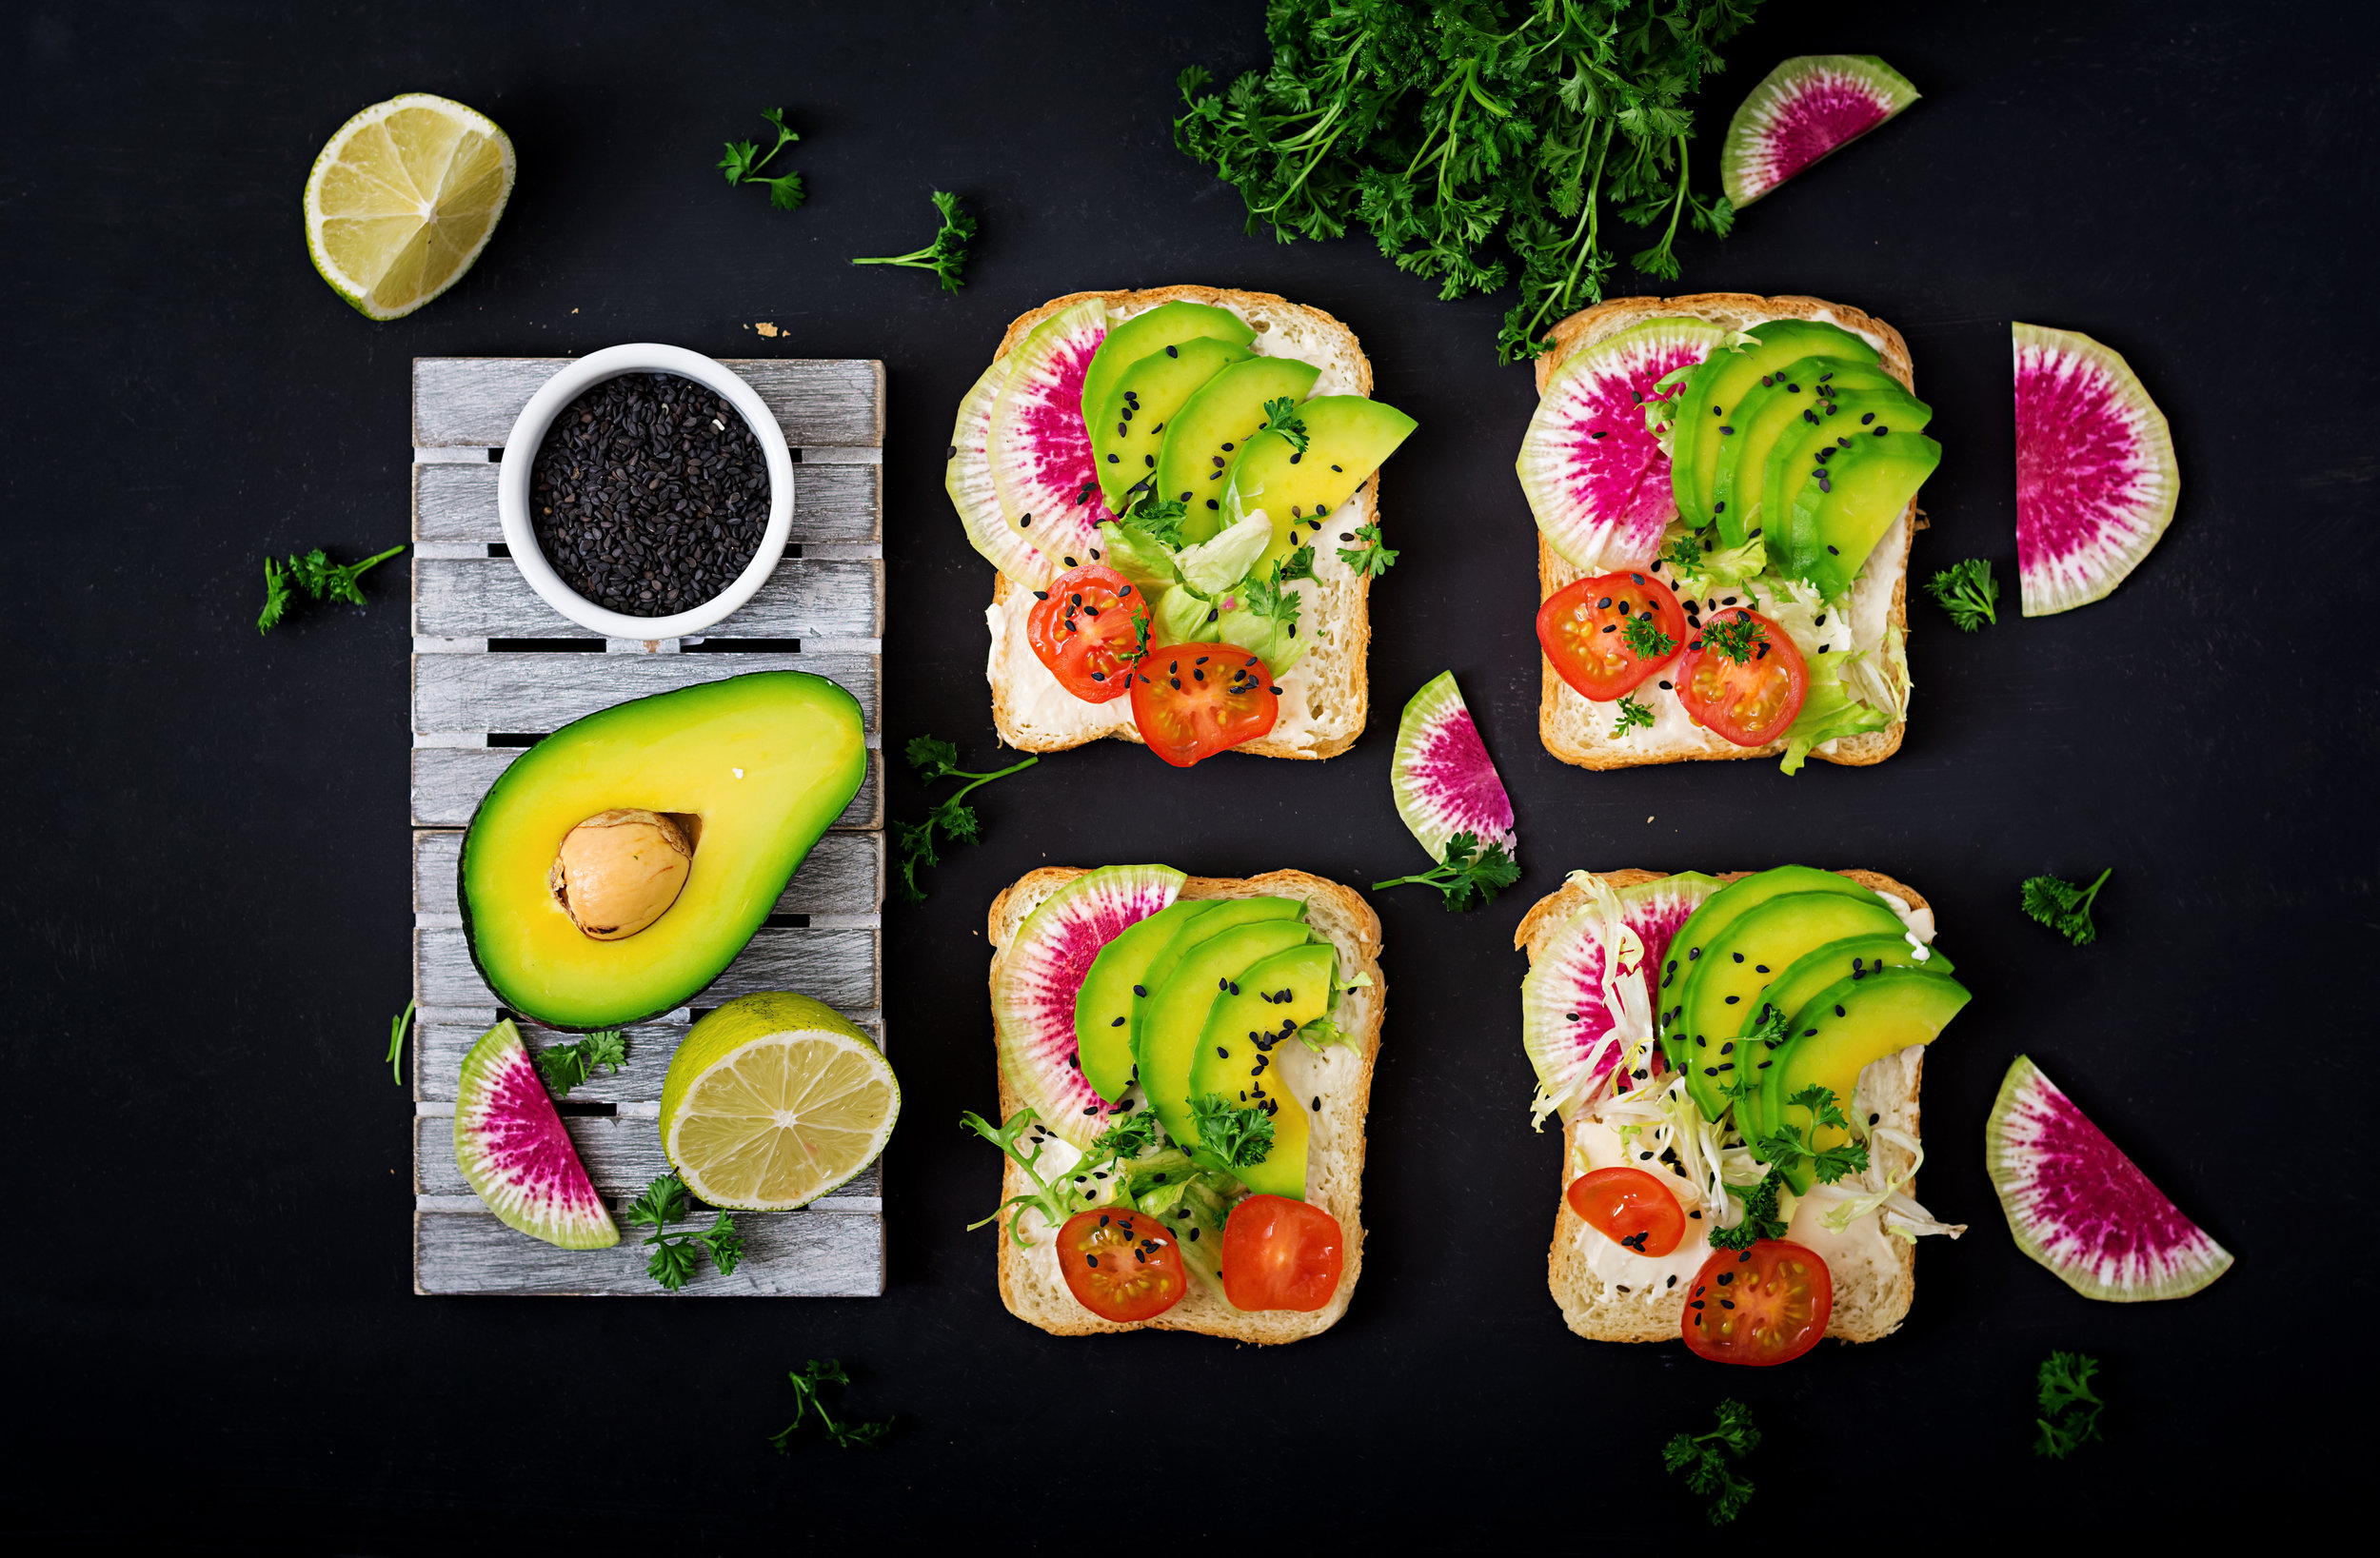 vegan-sandwiches-with-avocado-watermelon-radish-PM7B5U7.jpg